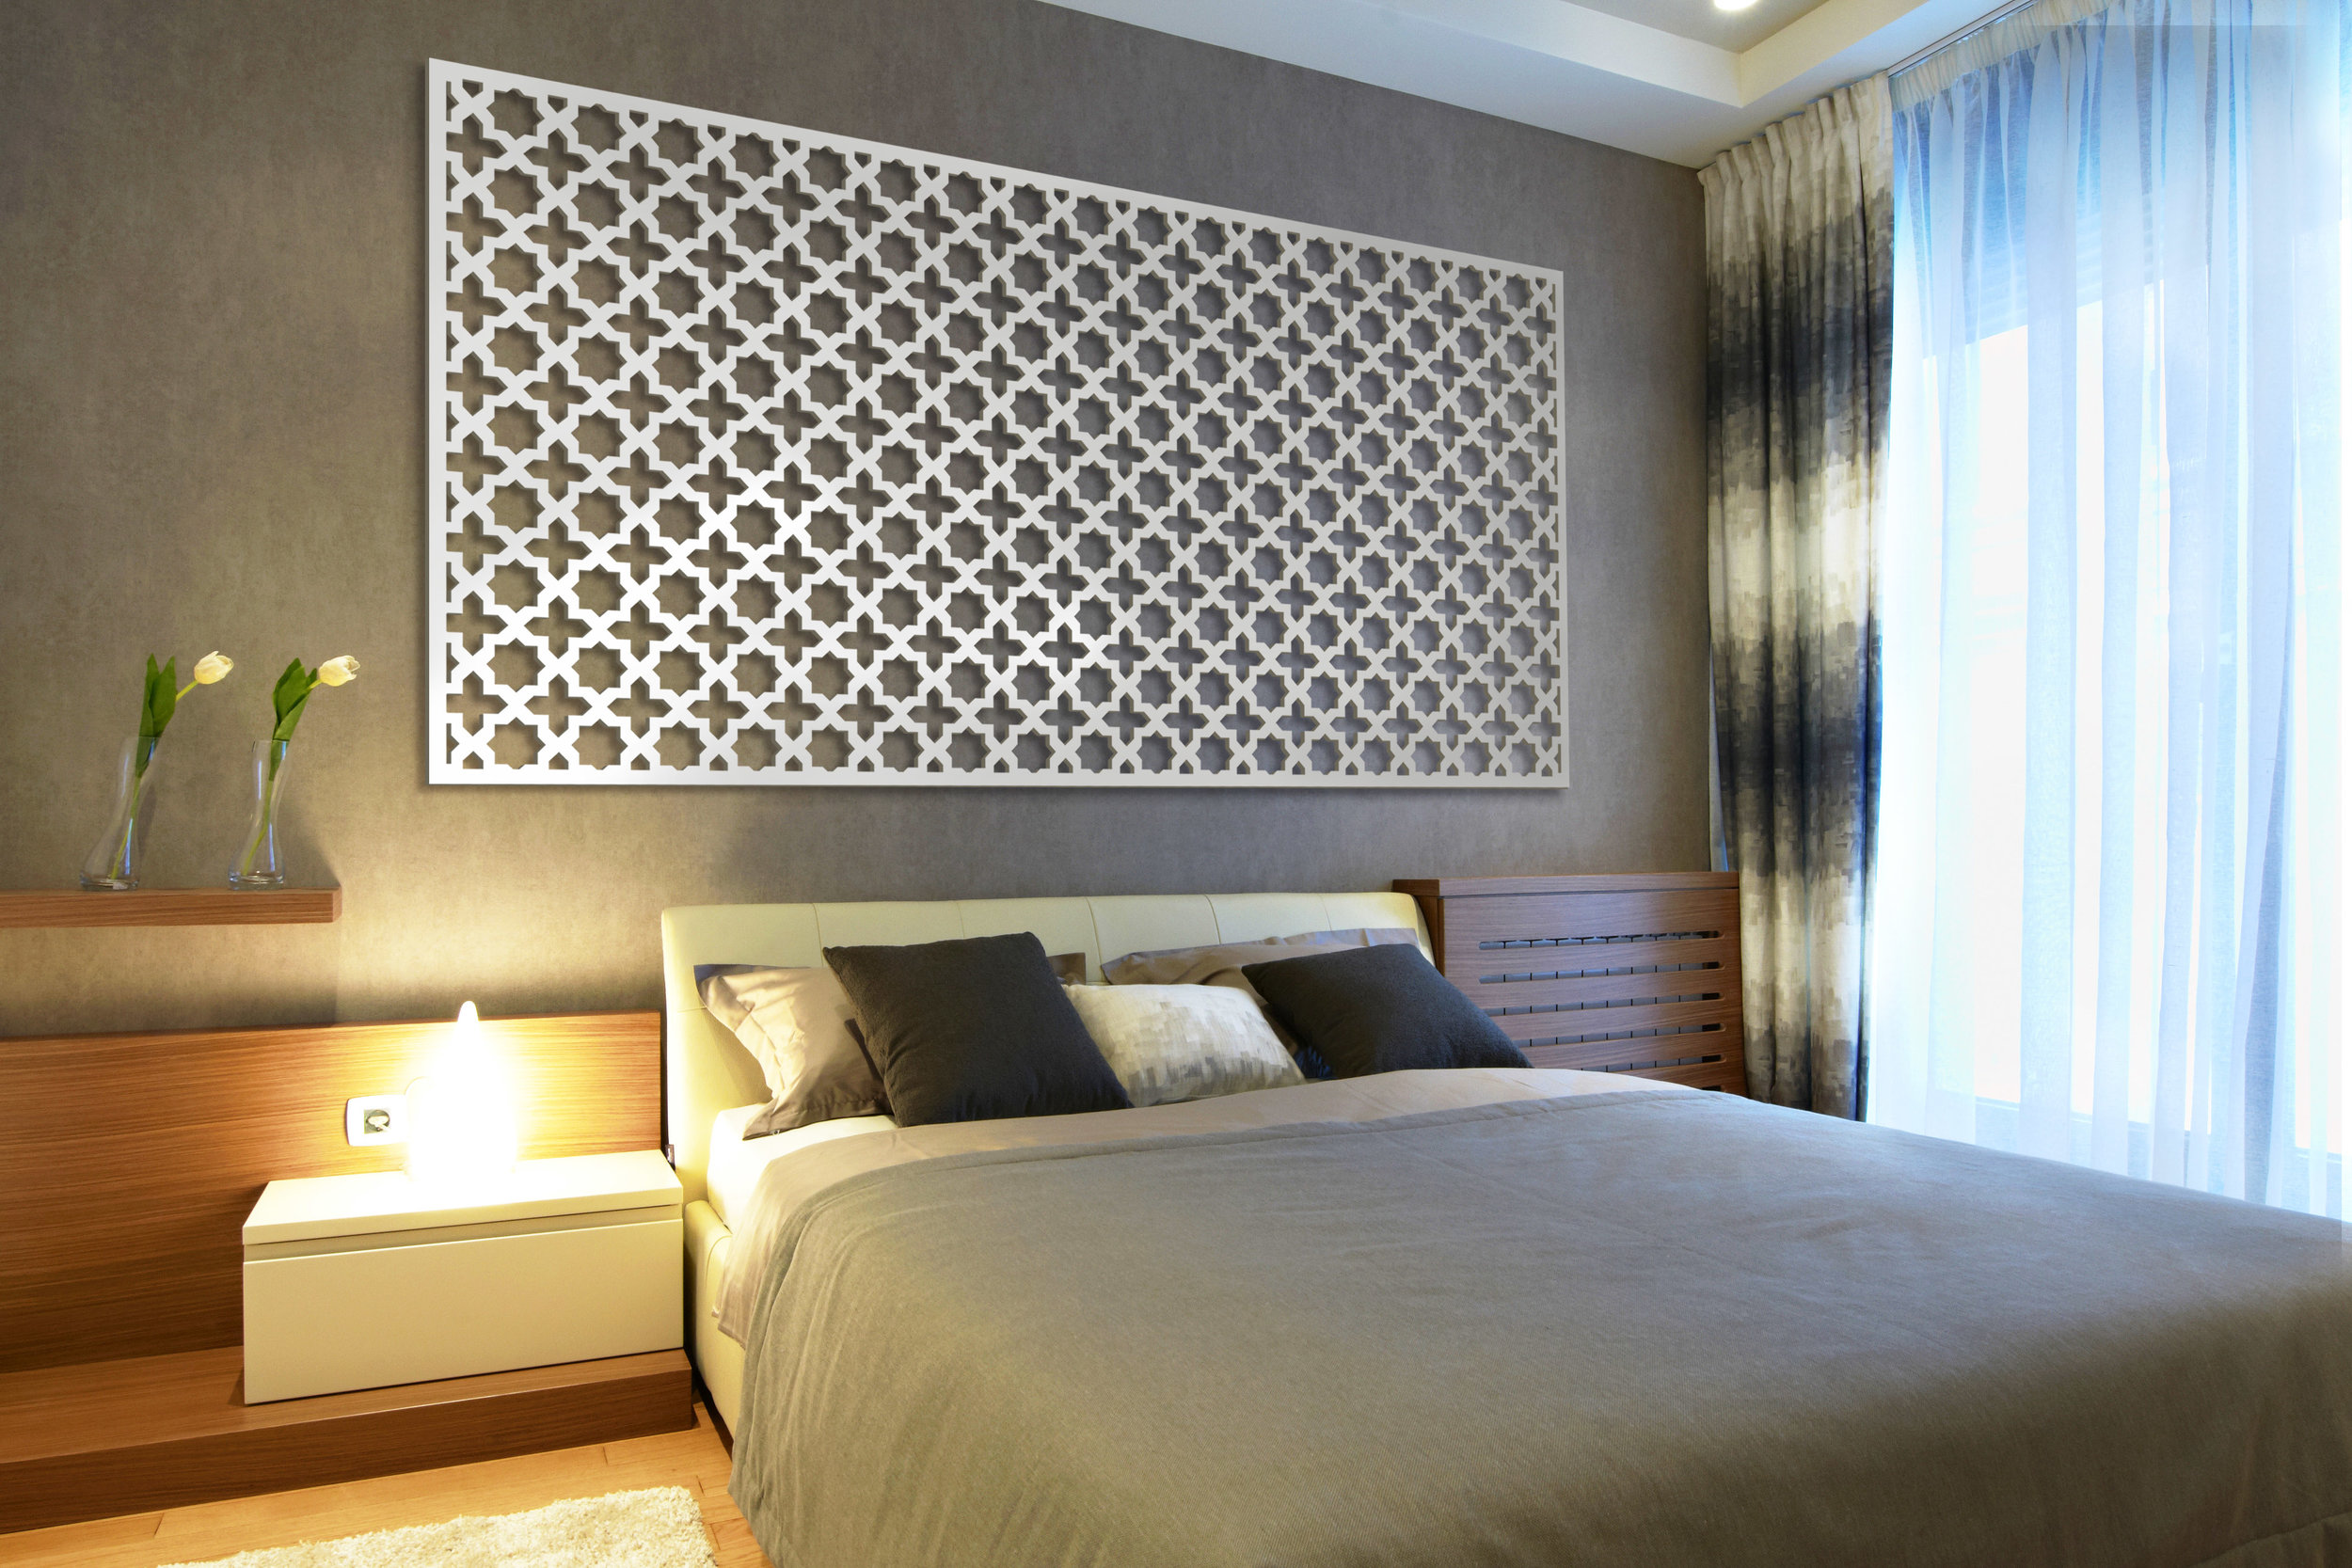 Installation Rendering C   Arabesque decorative hotel wall panel - painted